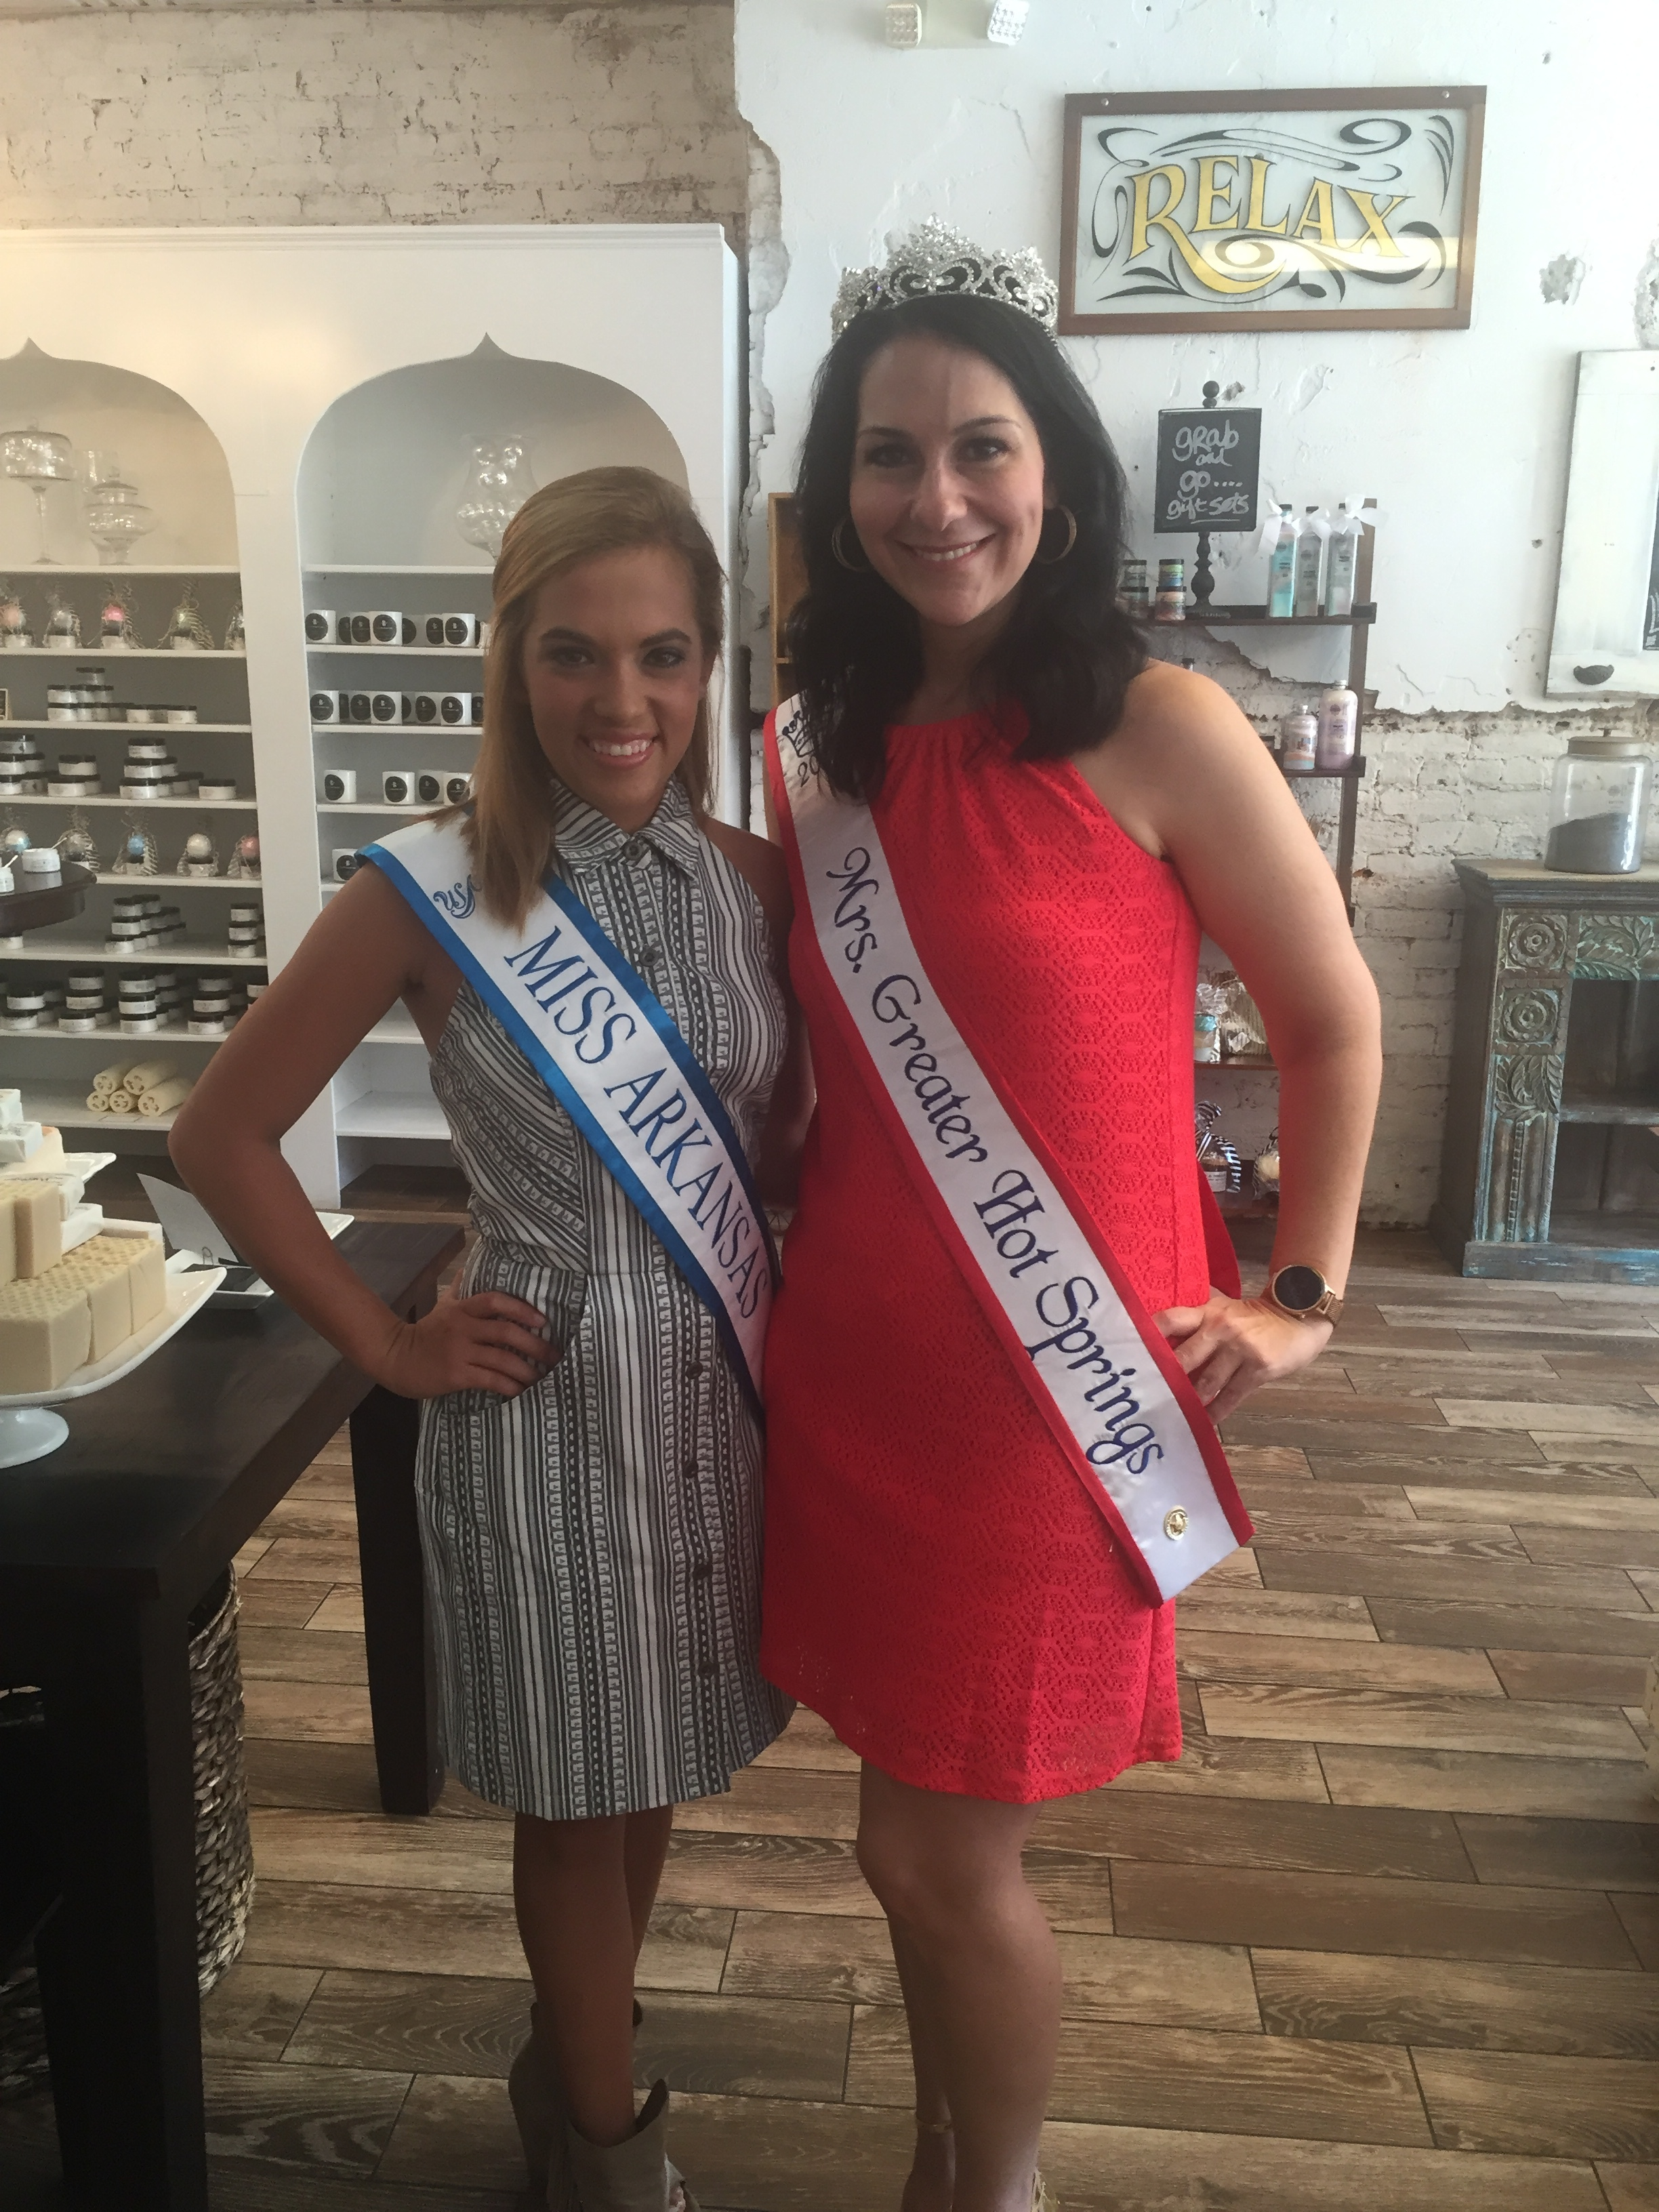 I was fortunate enough that Miss Arkansas was visiting this day as well.